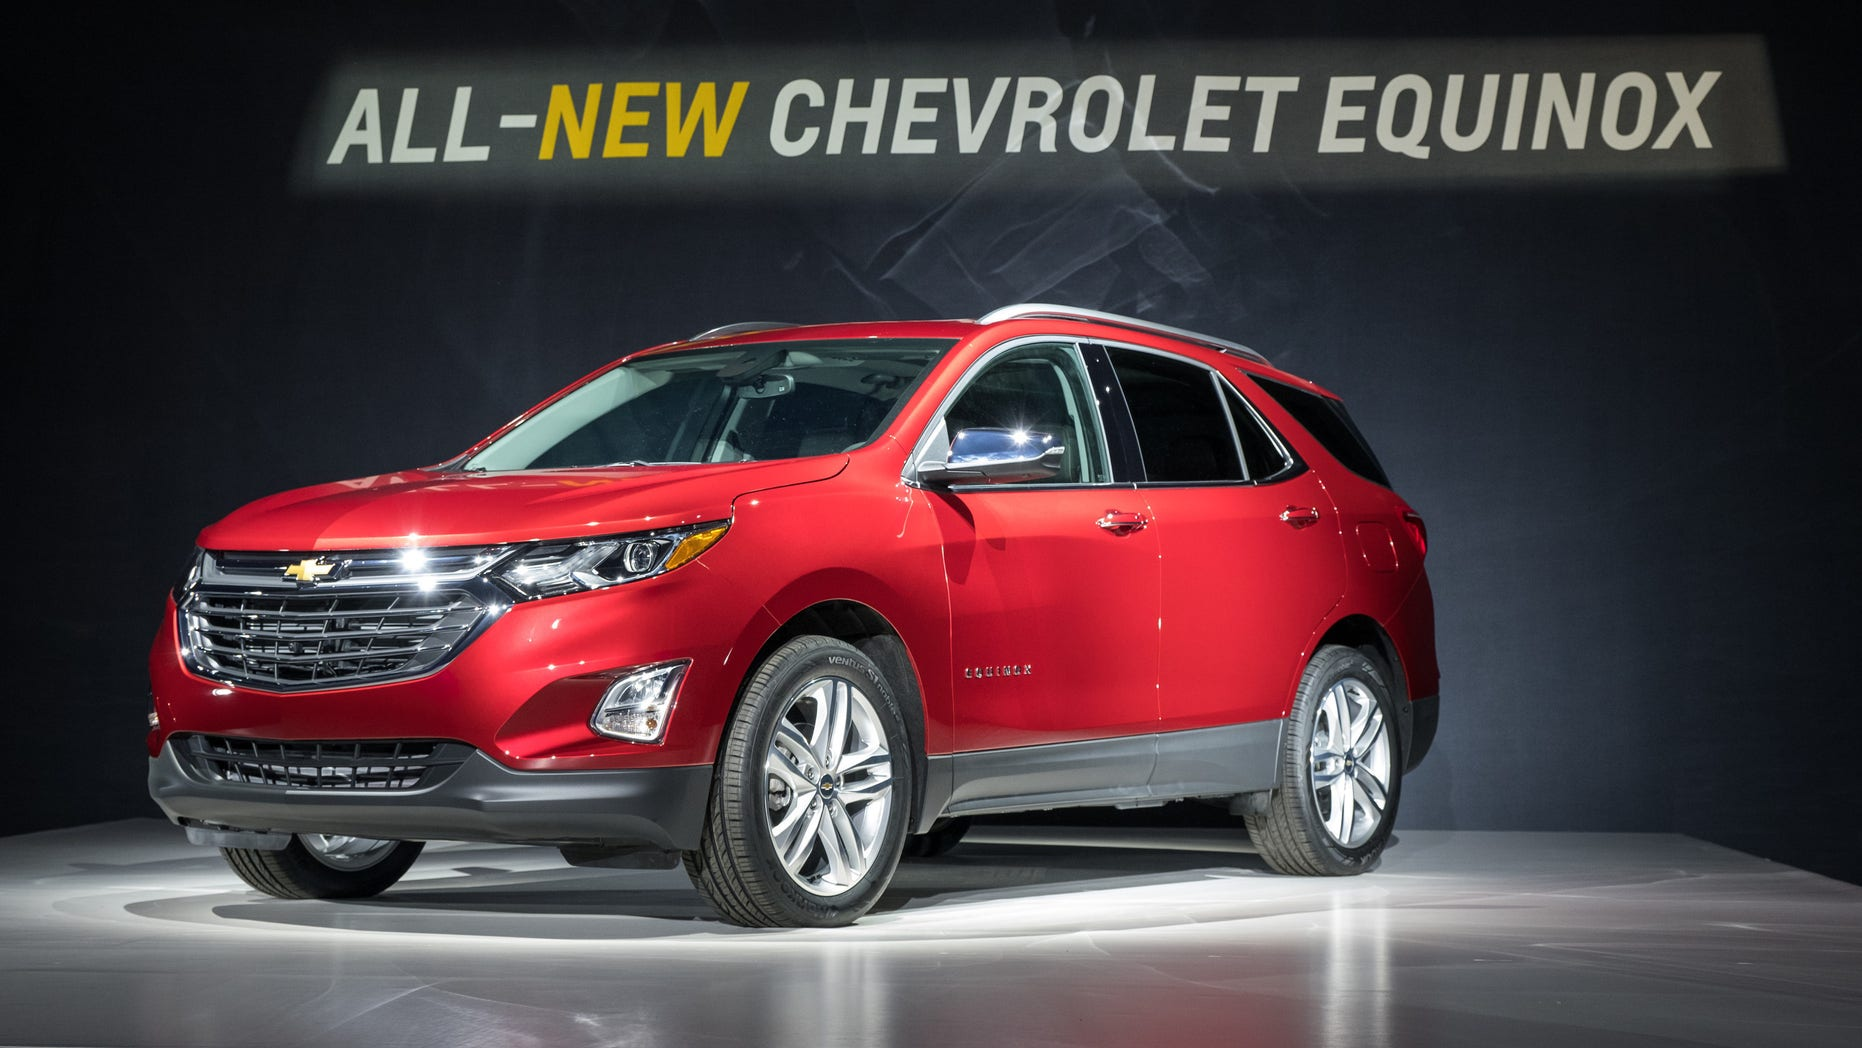 This photo provided by General Motors shows the 2018 Chevrolet Equinox compact SUV, Thursday, Sept. 22, 2016 in Chicago.  While sales of its main competitors are rising, the aging Chevrolet Equinox compact SUV has taken a dramatic tumble so far this year in the fastest-growing part of the U.S. market. General Motors is hoping to turn that around when it replaces the Equinox with a revamped model that goes on sale early next year. (Steve Fecht/General Motors via AP)